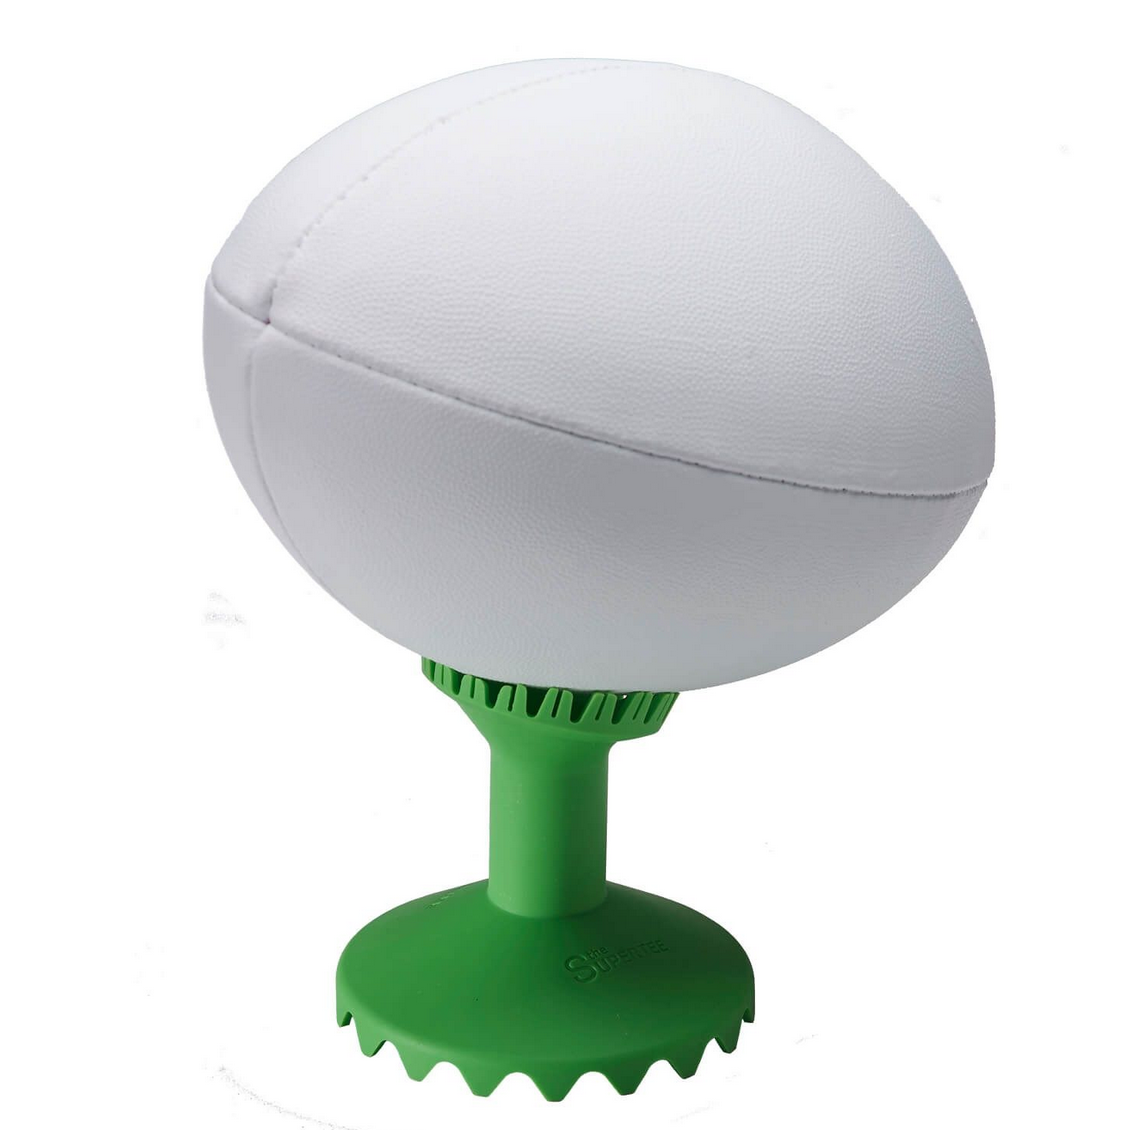 Supertee King - Rugby Kicking Tee